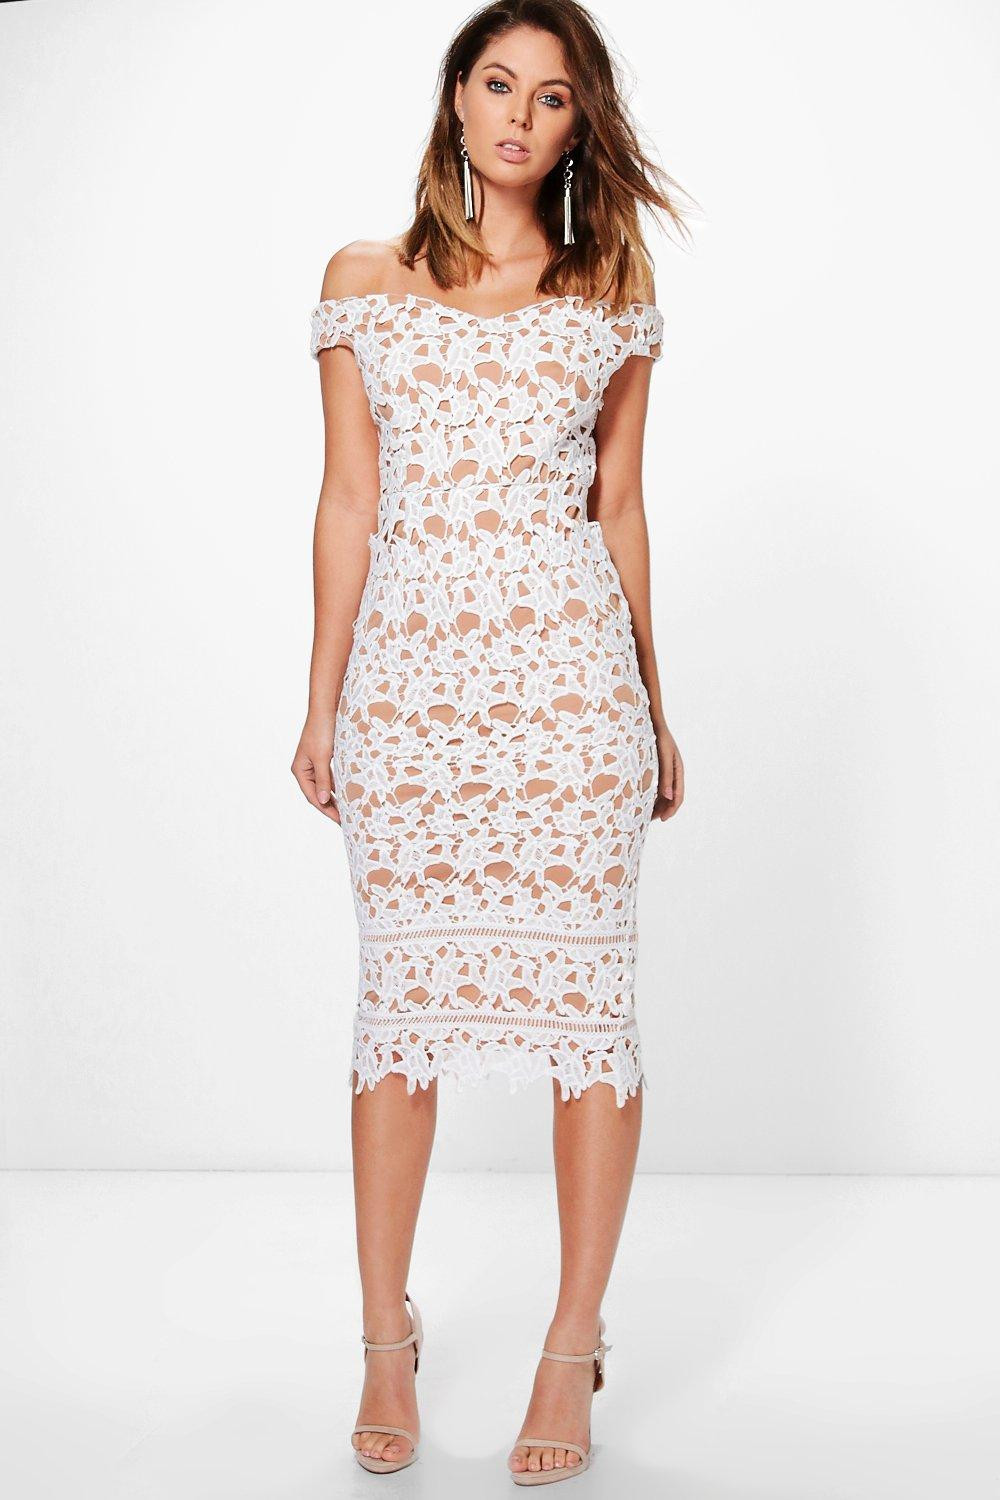 Lovely Boohoo Womens Boutique Lacey Crochet F Shoulder Midi Crochet Midi Dress Of Lovely Brielle Crochet Waisted Midi Dress In White Crochet Midi Dress